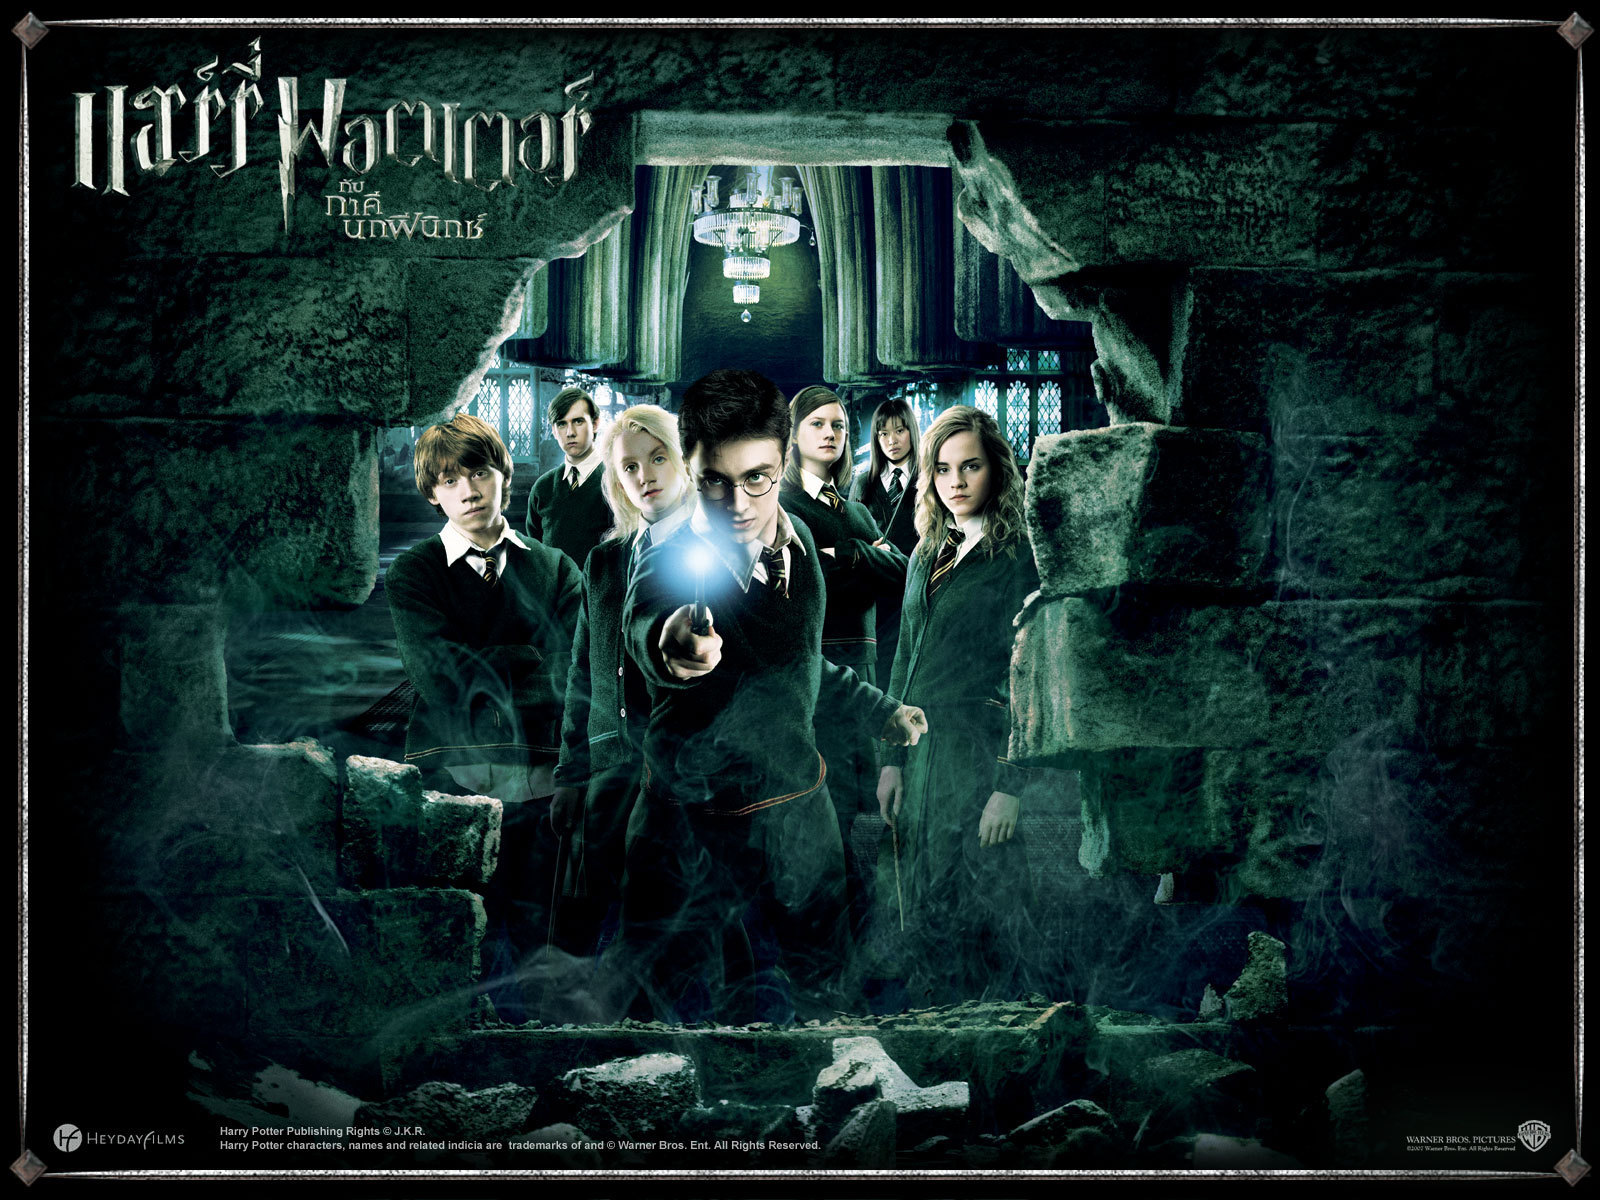 Hd wallpaper harry potter - Harry Potter Harry Potter Wallpaper 17028876 Fanpop